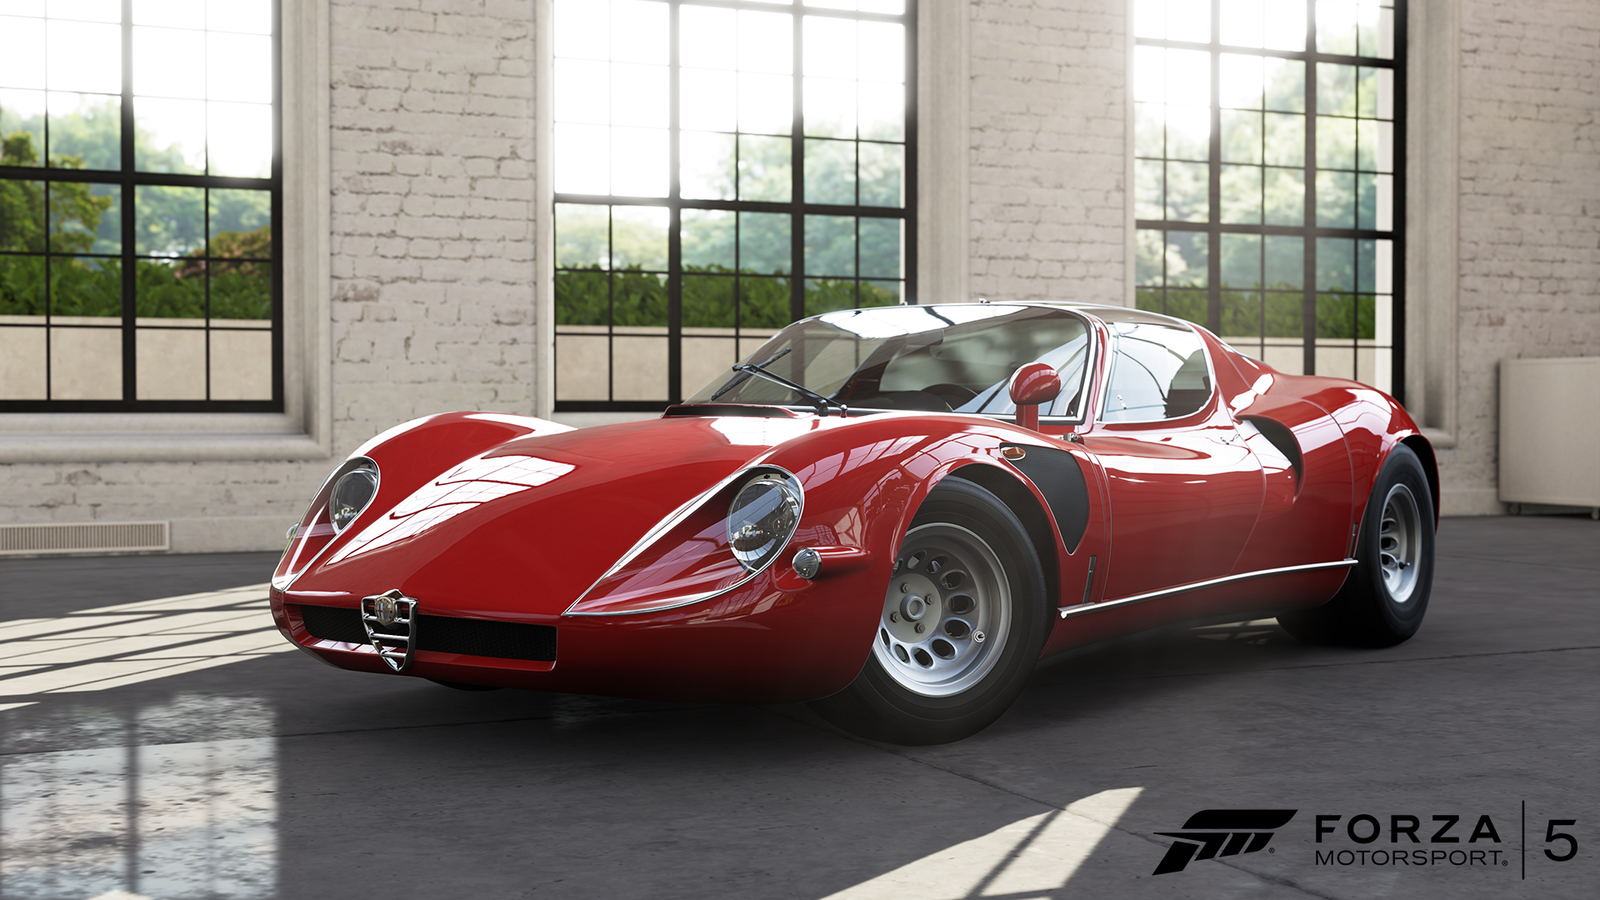 Alfa Romeo 33 Stradale as one of the Winners of the Concorso d